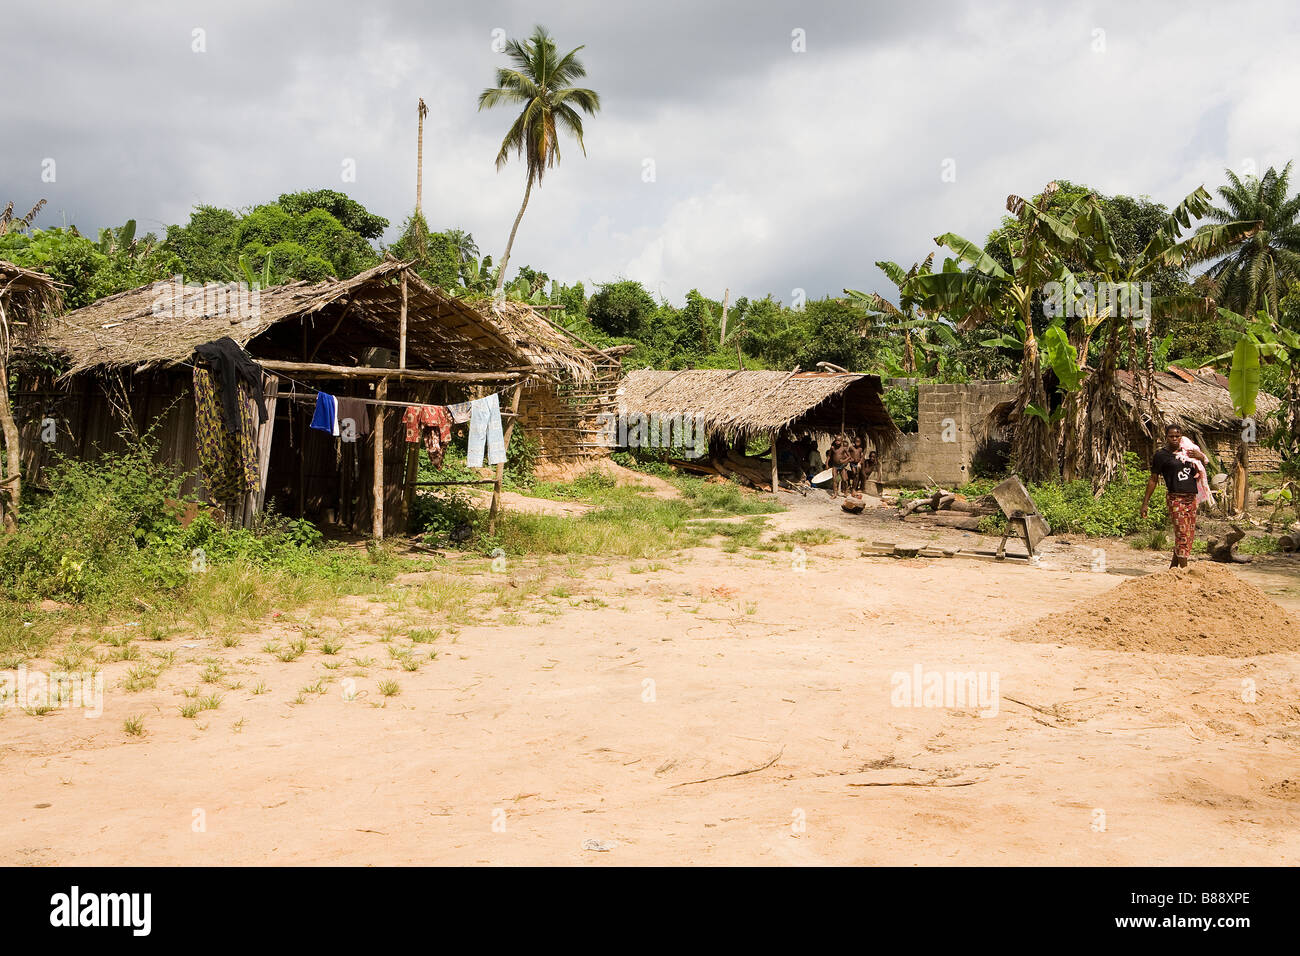 Scenic view of a remote Nigerian village in the middle of the jungle. Clothes are drying on a line but a storm is - Stock Image